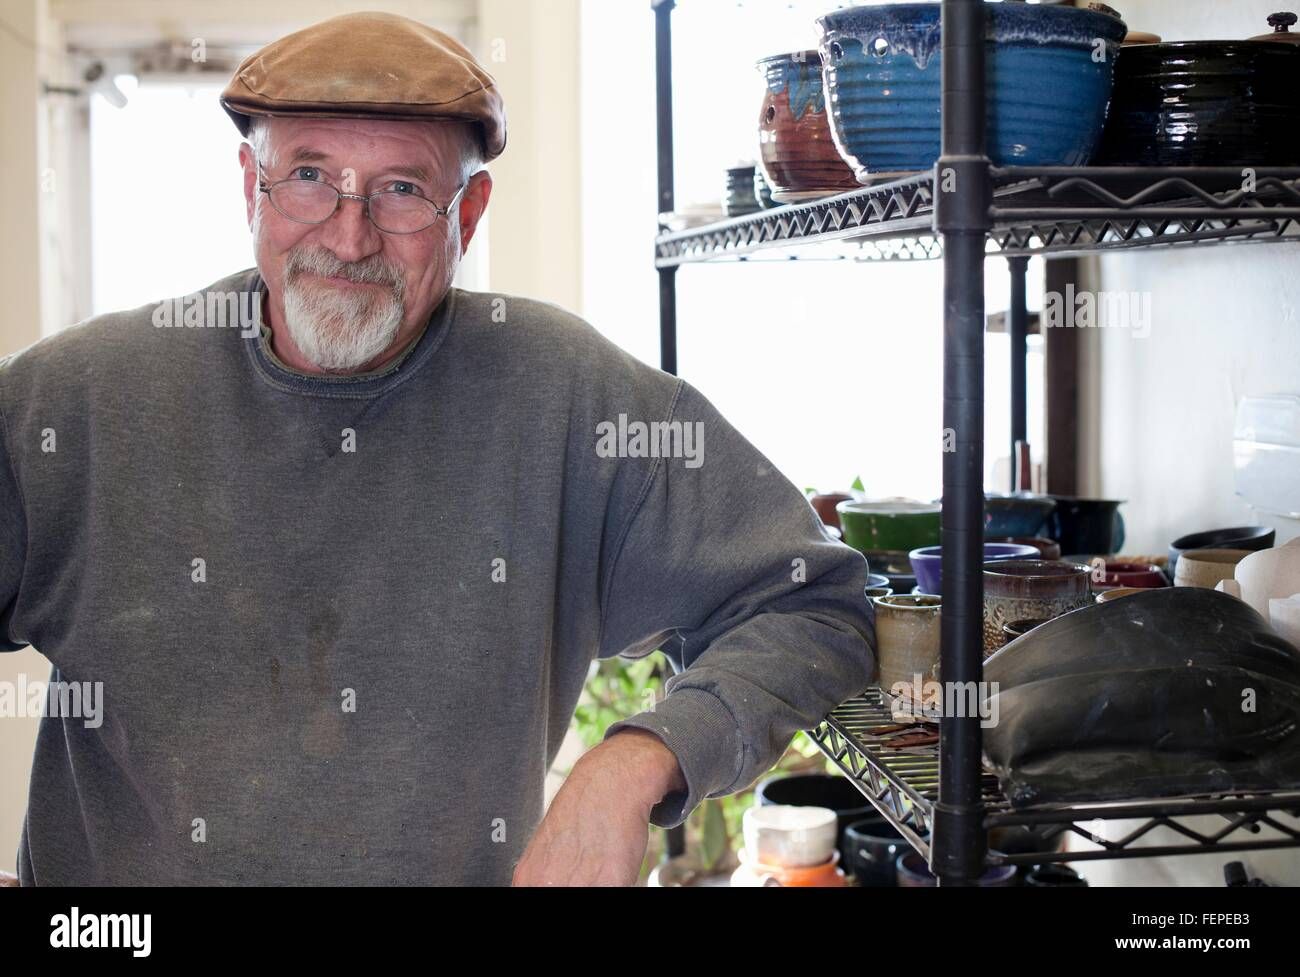 Potter wearing flat cap leaning against shelving display of glazed clay pots looking at camera smiling - Stock Image